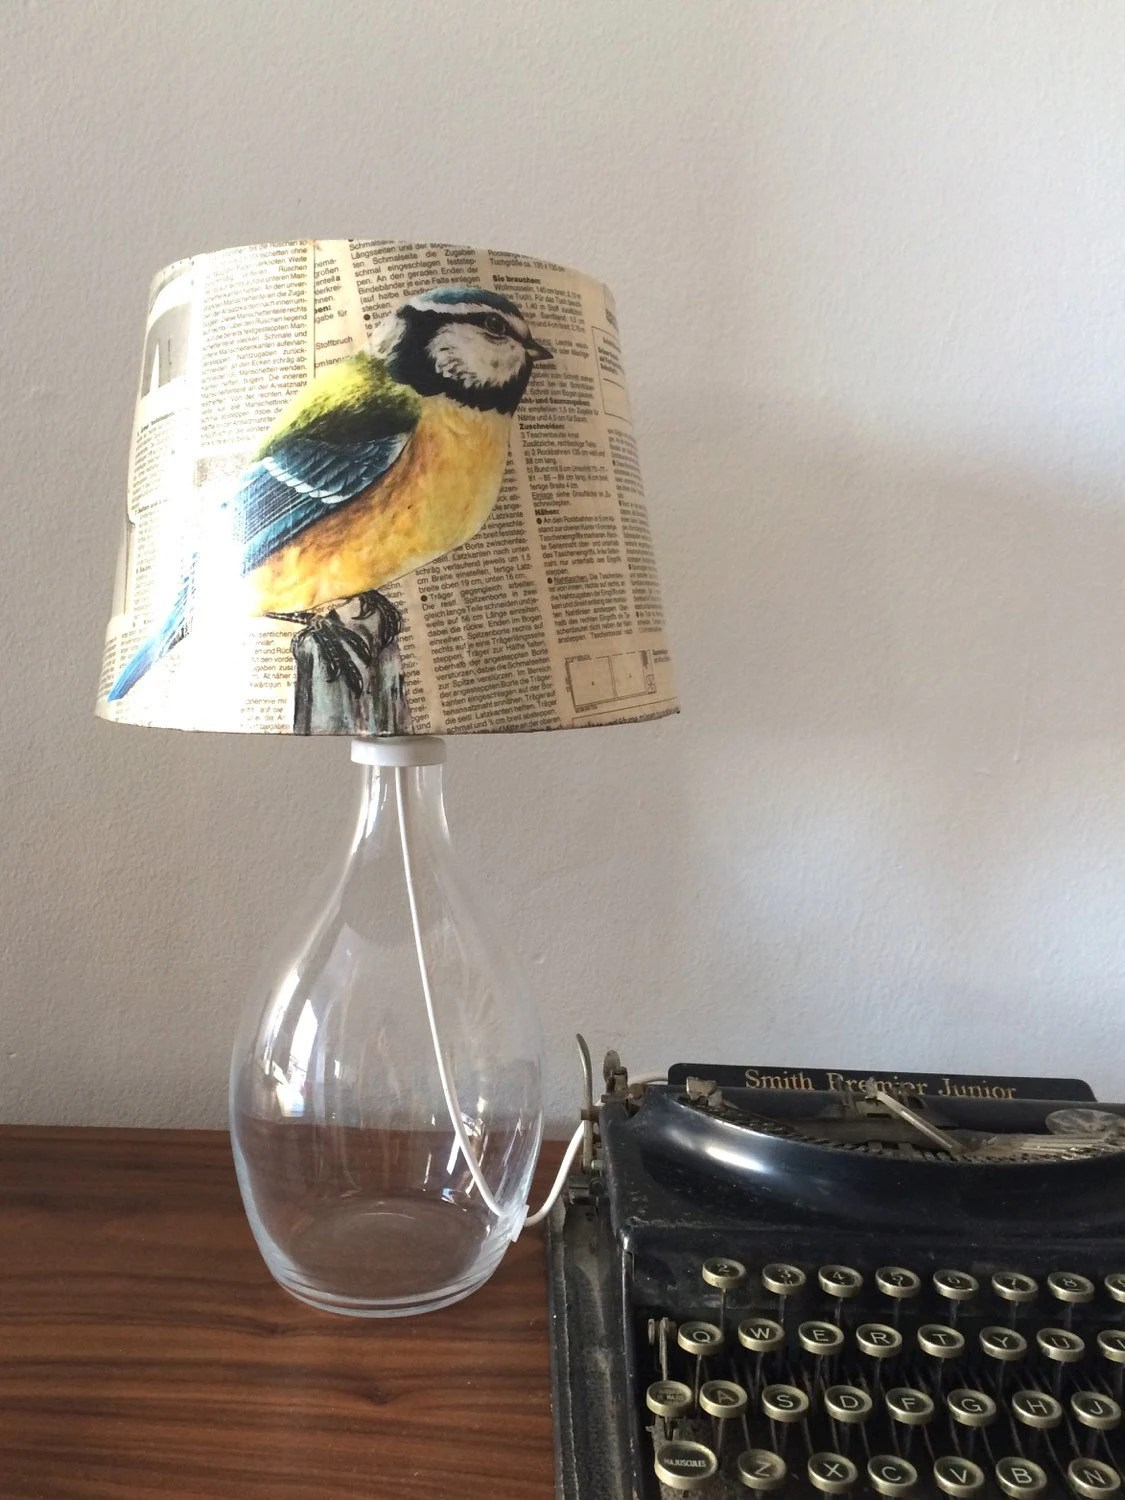 Side By Side Schmal Limited Upcycled Lampshade Bird Image Side Lamp Vintage Sewing Pattern Bird Lover Gift